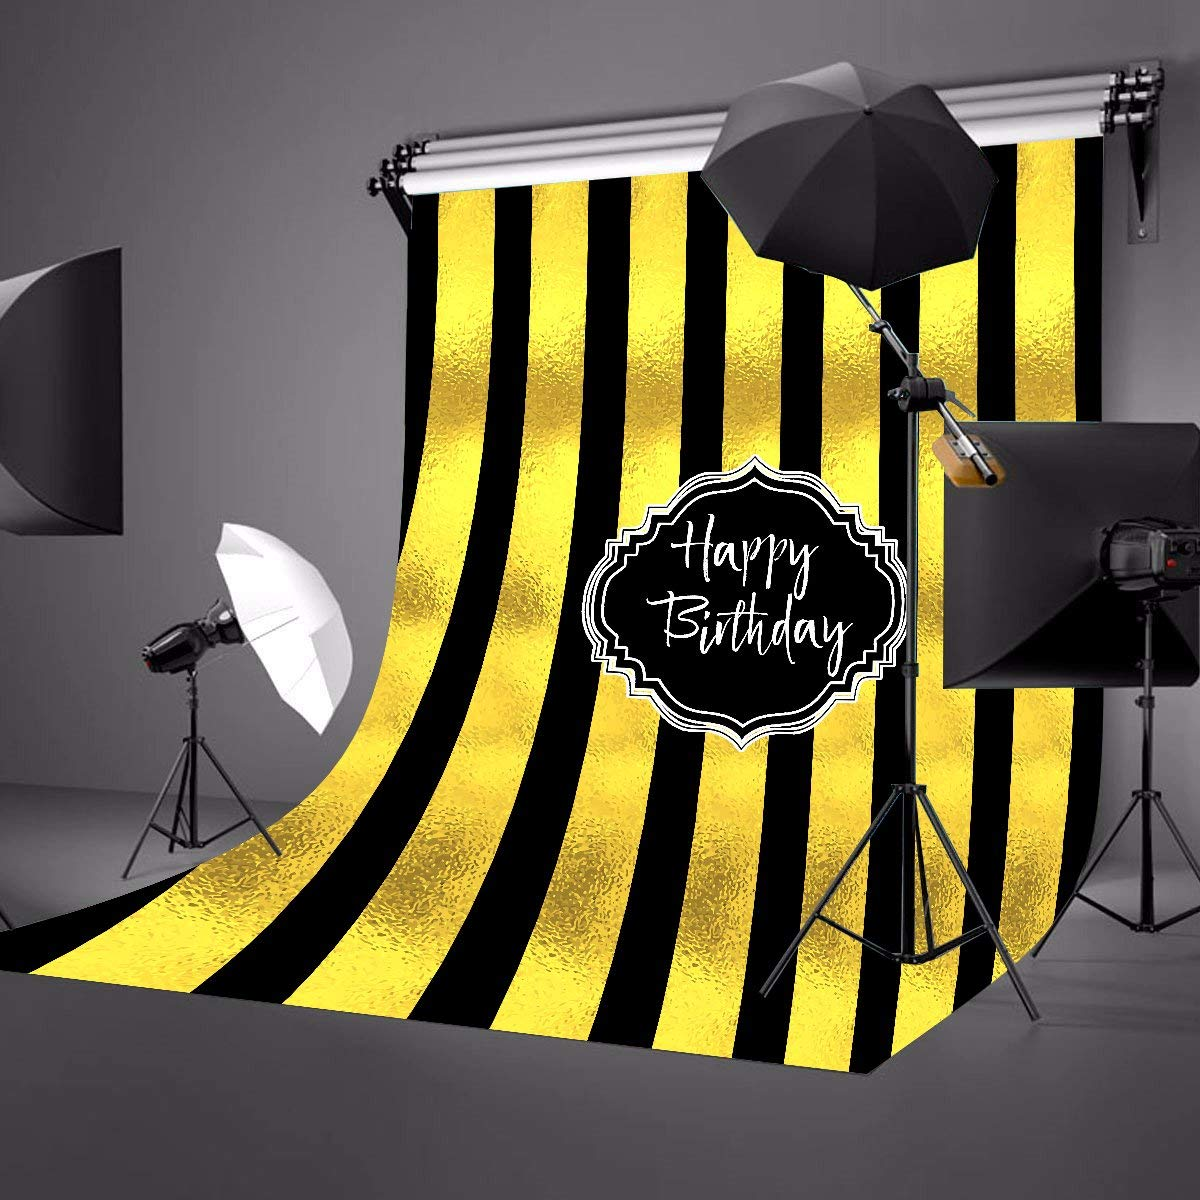 150x210cm Happy Birthday Photography Background Black and Golden Vertical Stripes Backdrops Studio Props Birthday Party in Photo Studio Accessories from Consumer Electronics